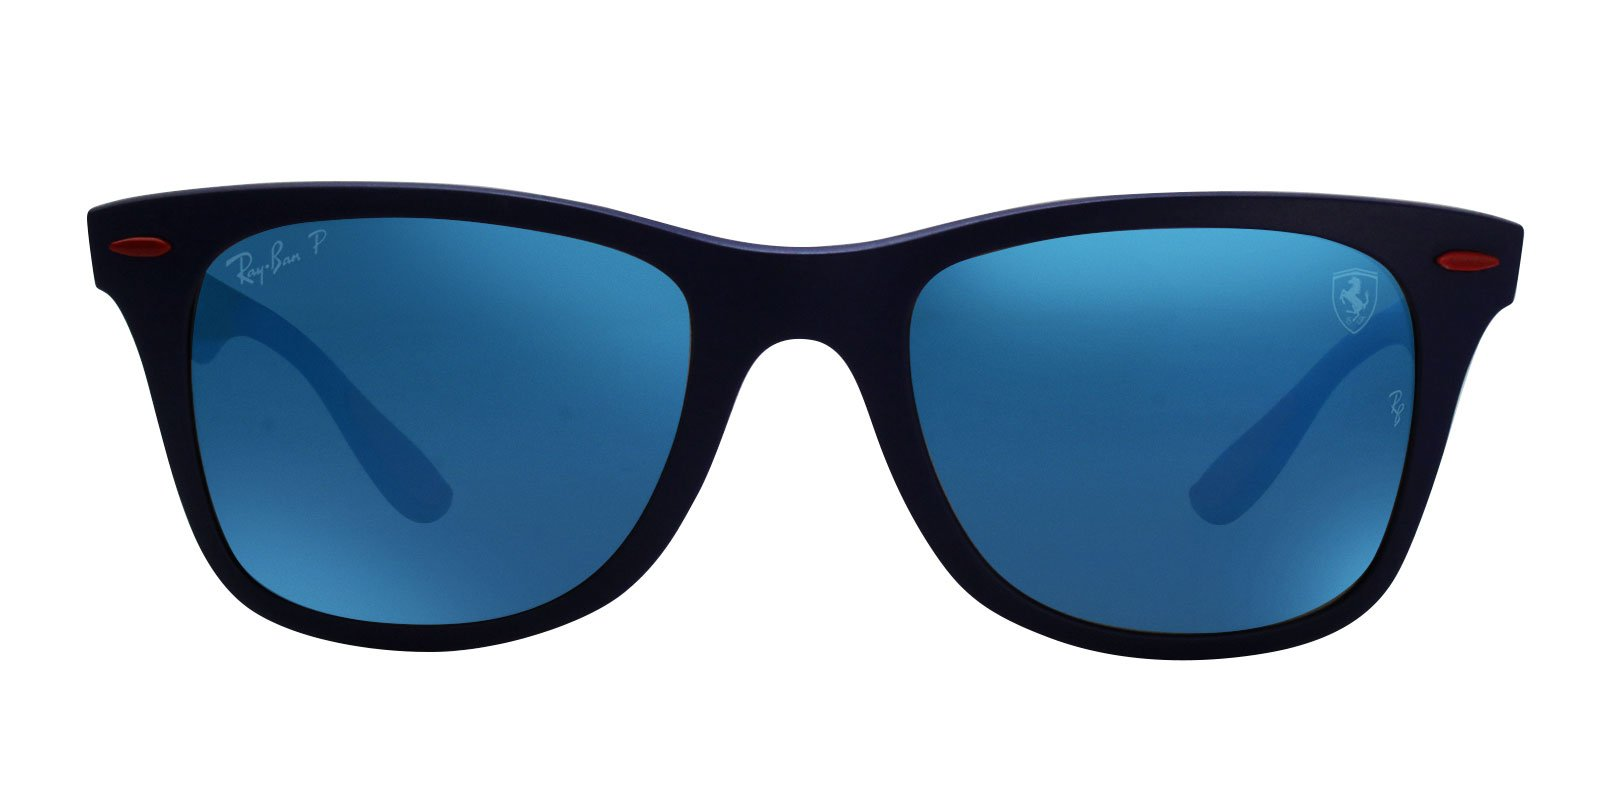 Ray Ban - RB4195M Blue Wayfarer Unisex Sunglasses - 52mm-Sunglasses-Designer Eyes